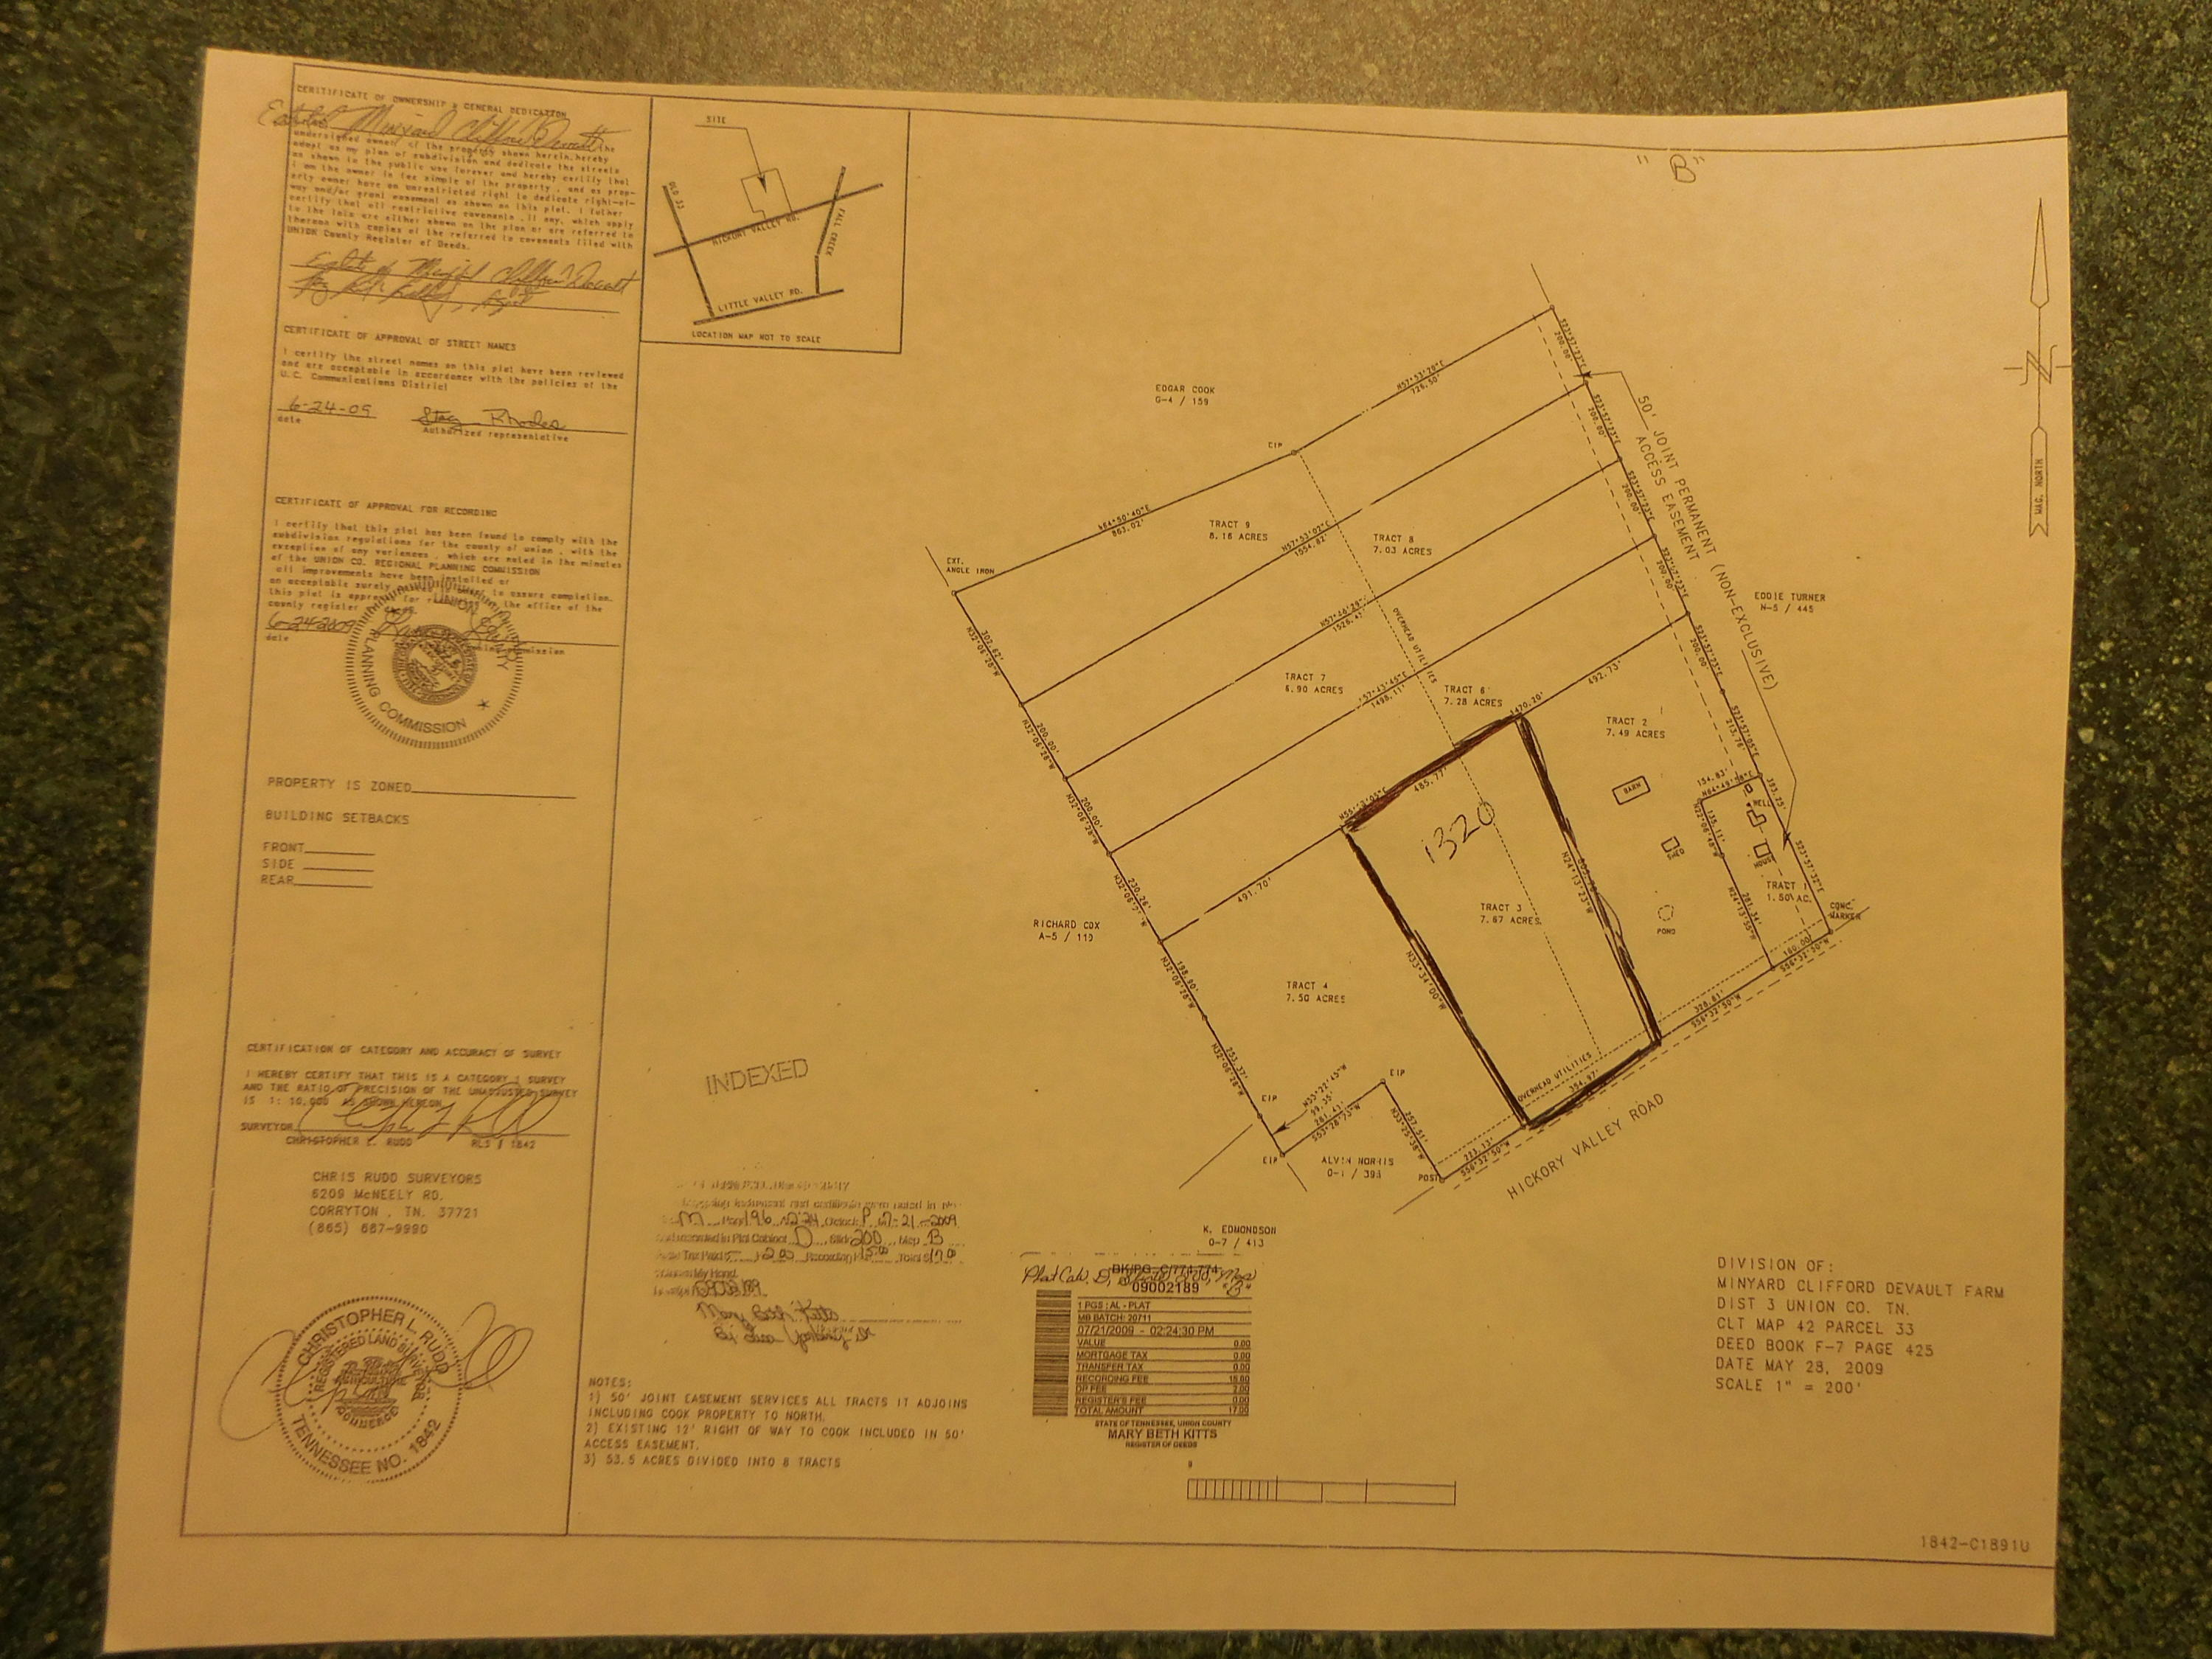 1320 Hickory Valley Rd Off Rd, Maynardville, Tennessee 37807, ,Lots & Acreage,For Sale,Hickory Valley Rd Off,1073106